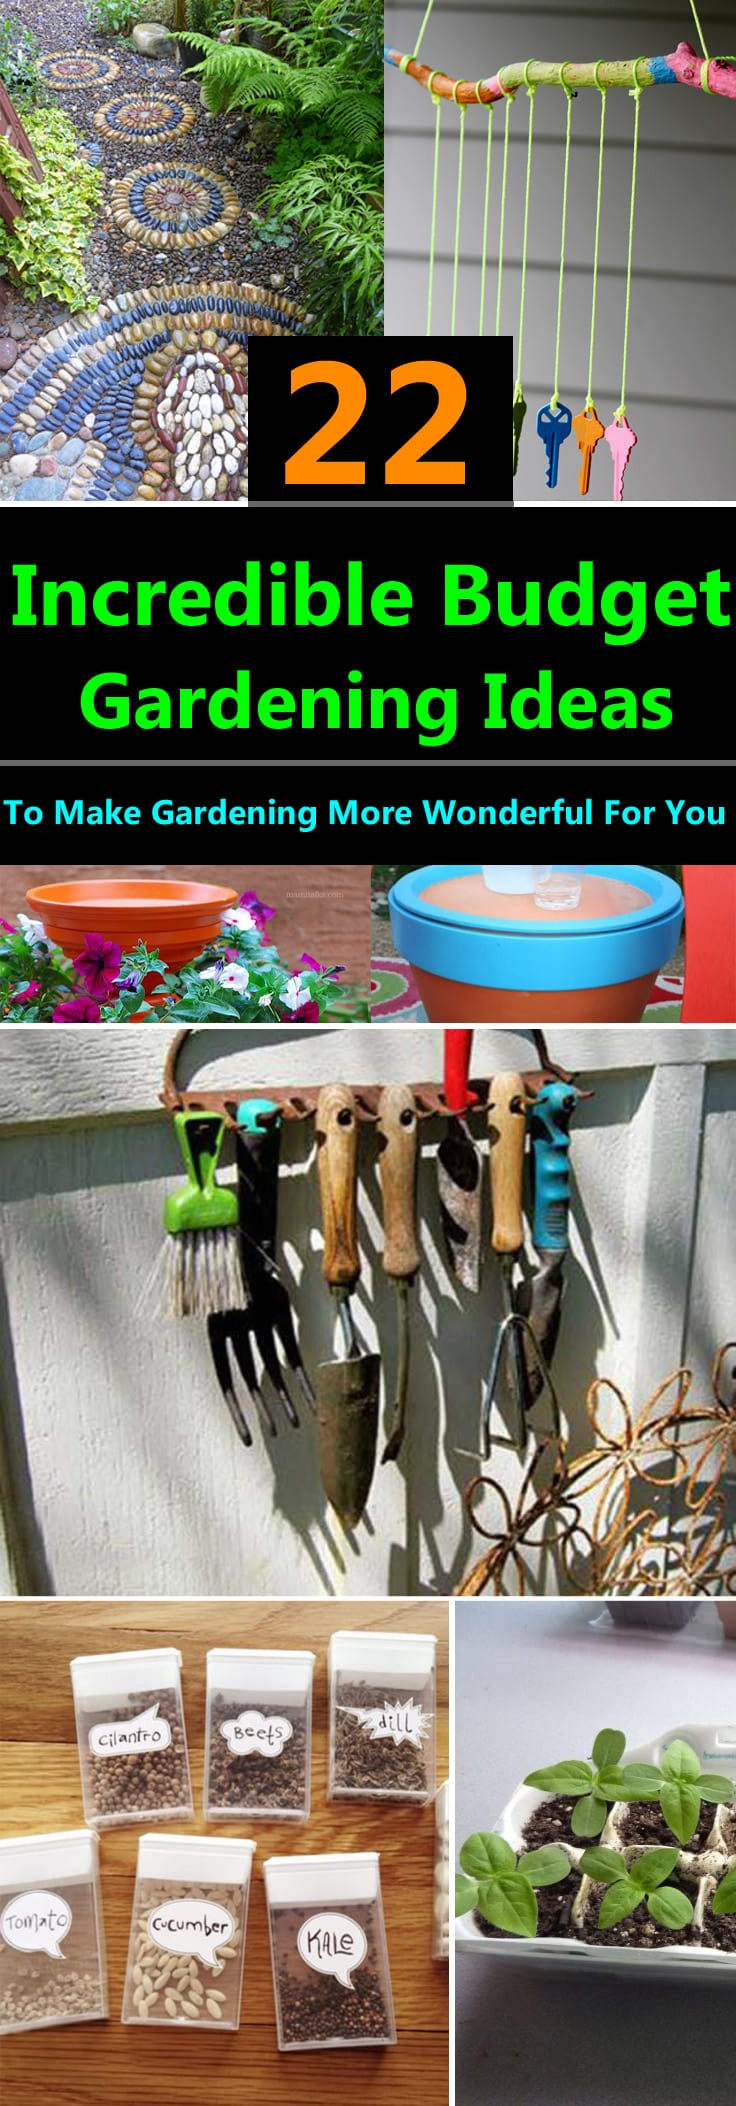 Cheap Gardening Ideas extraordinary cheap garden ideas for for cheap garden ideas Cheap Easy And Functional Diy Garden Ideas On A Budget Thatll Make Gardening